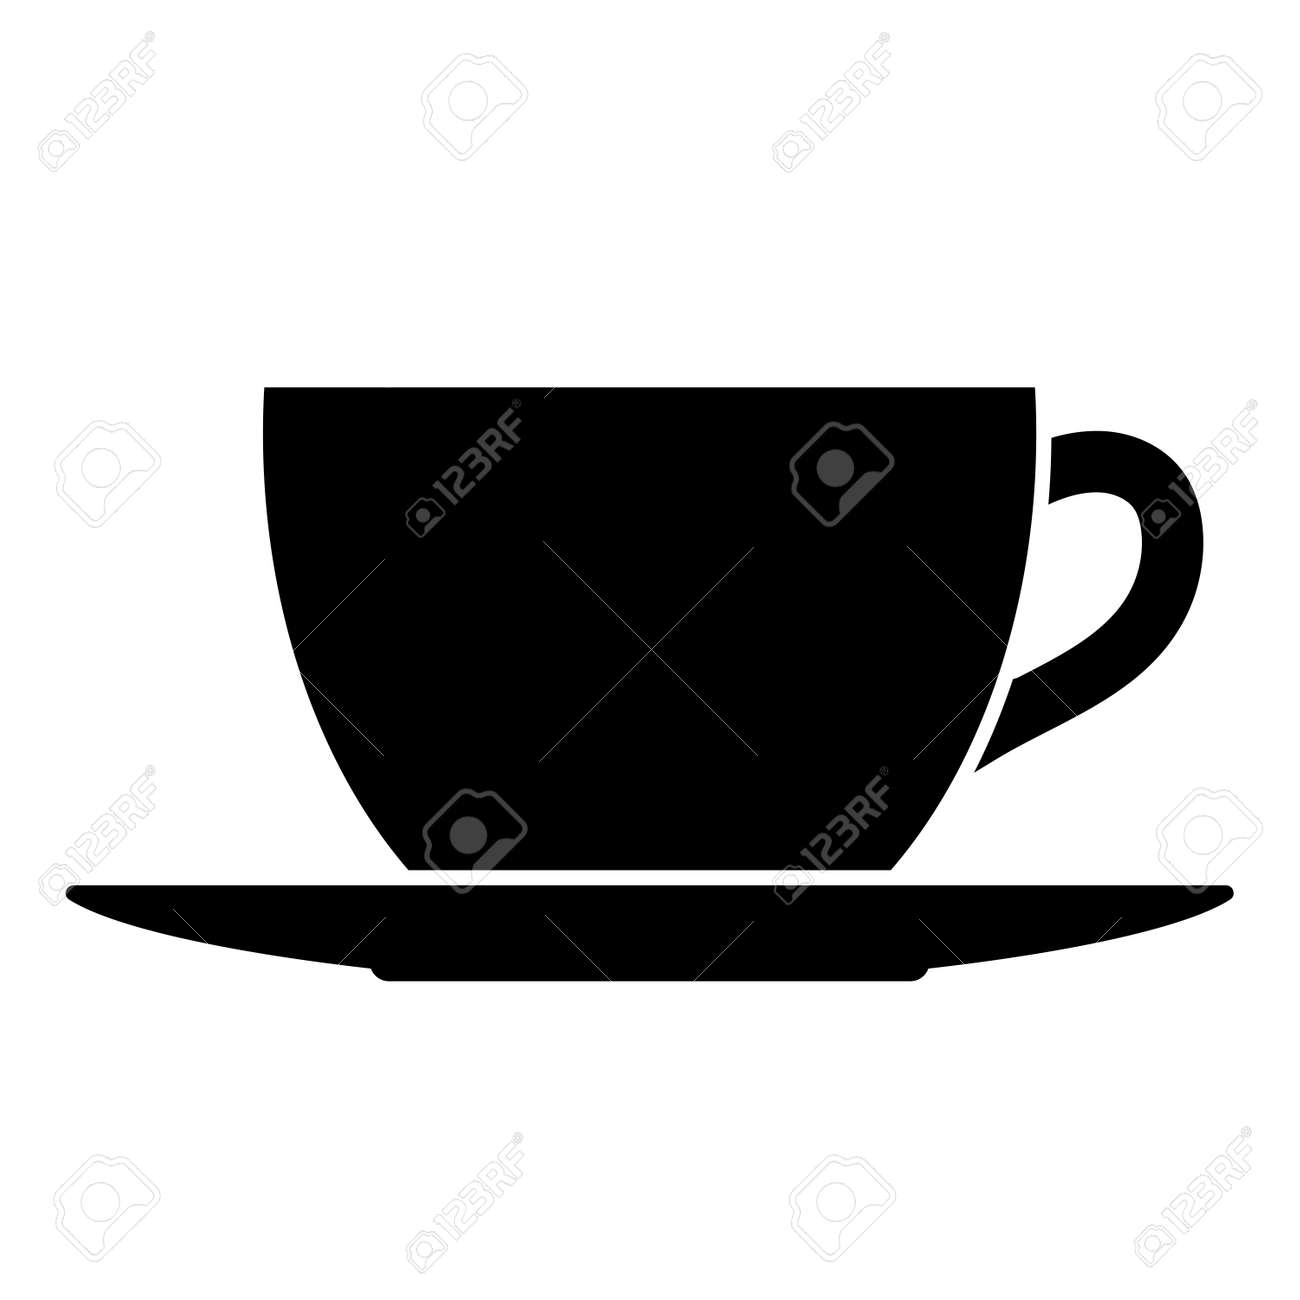 Tea Or Coffee Cup And Saucer Vector Illustration Royalty Free Cliparts Vectors And Stock Illustration Image 124155665